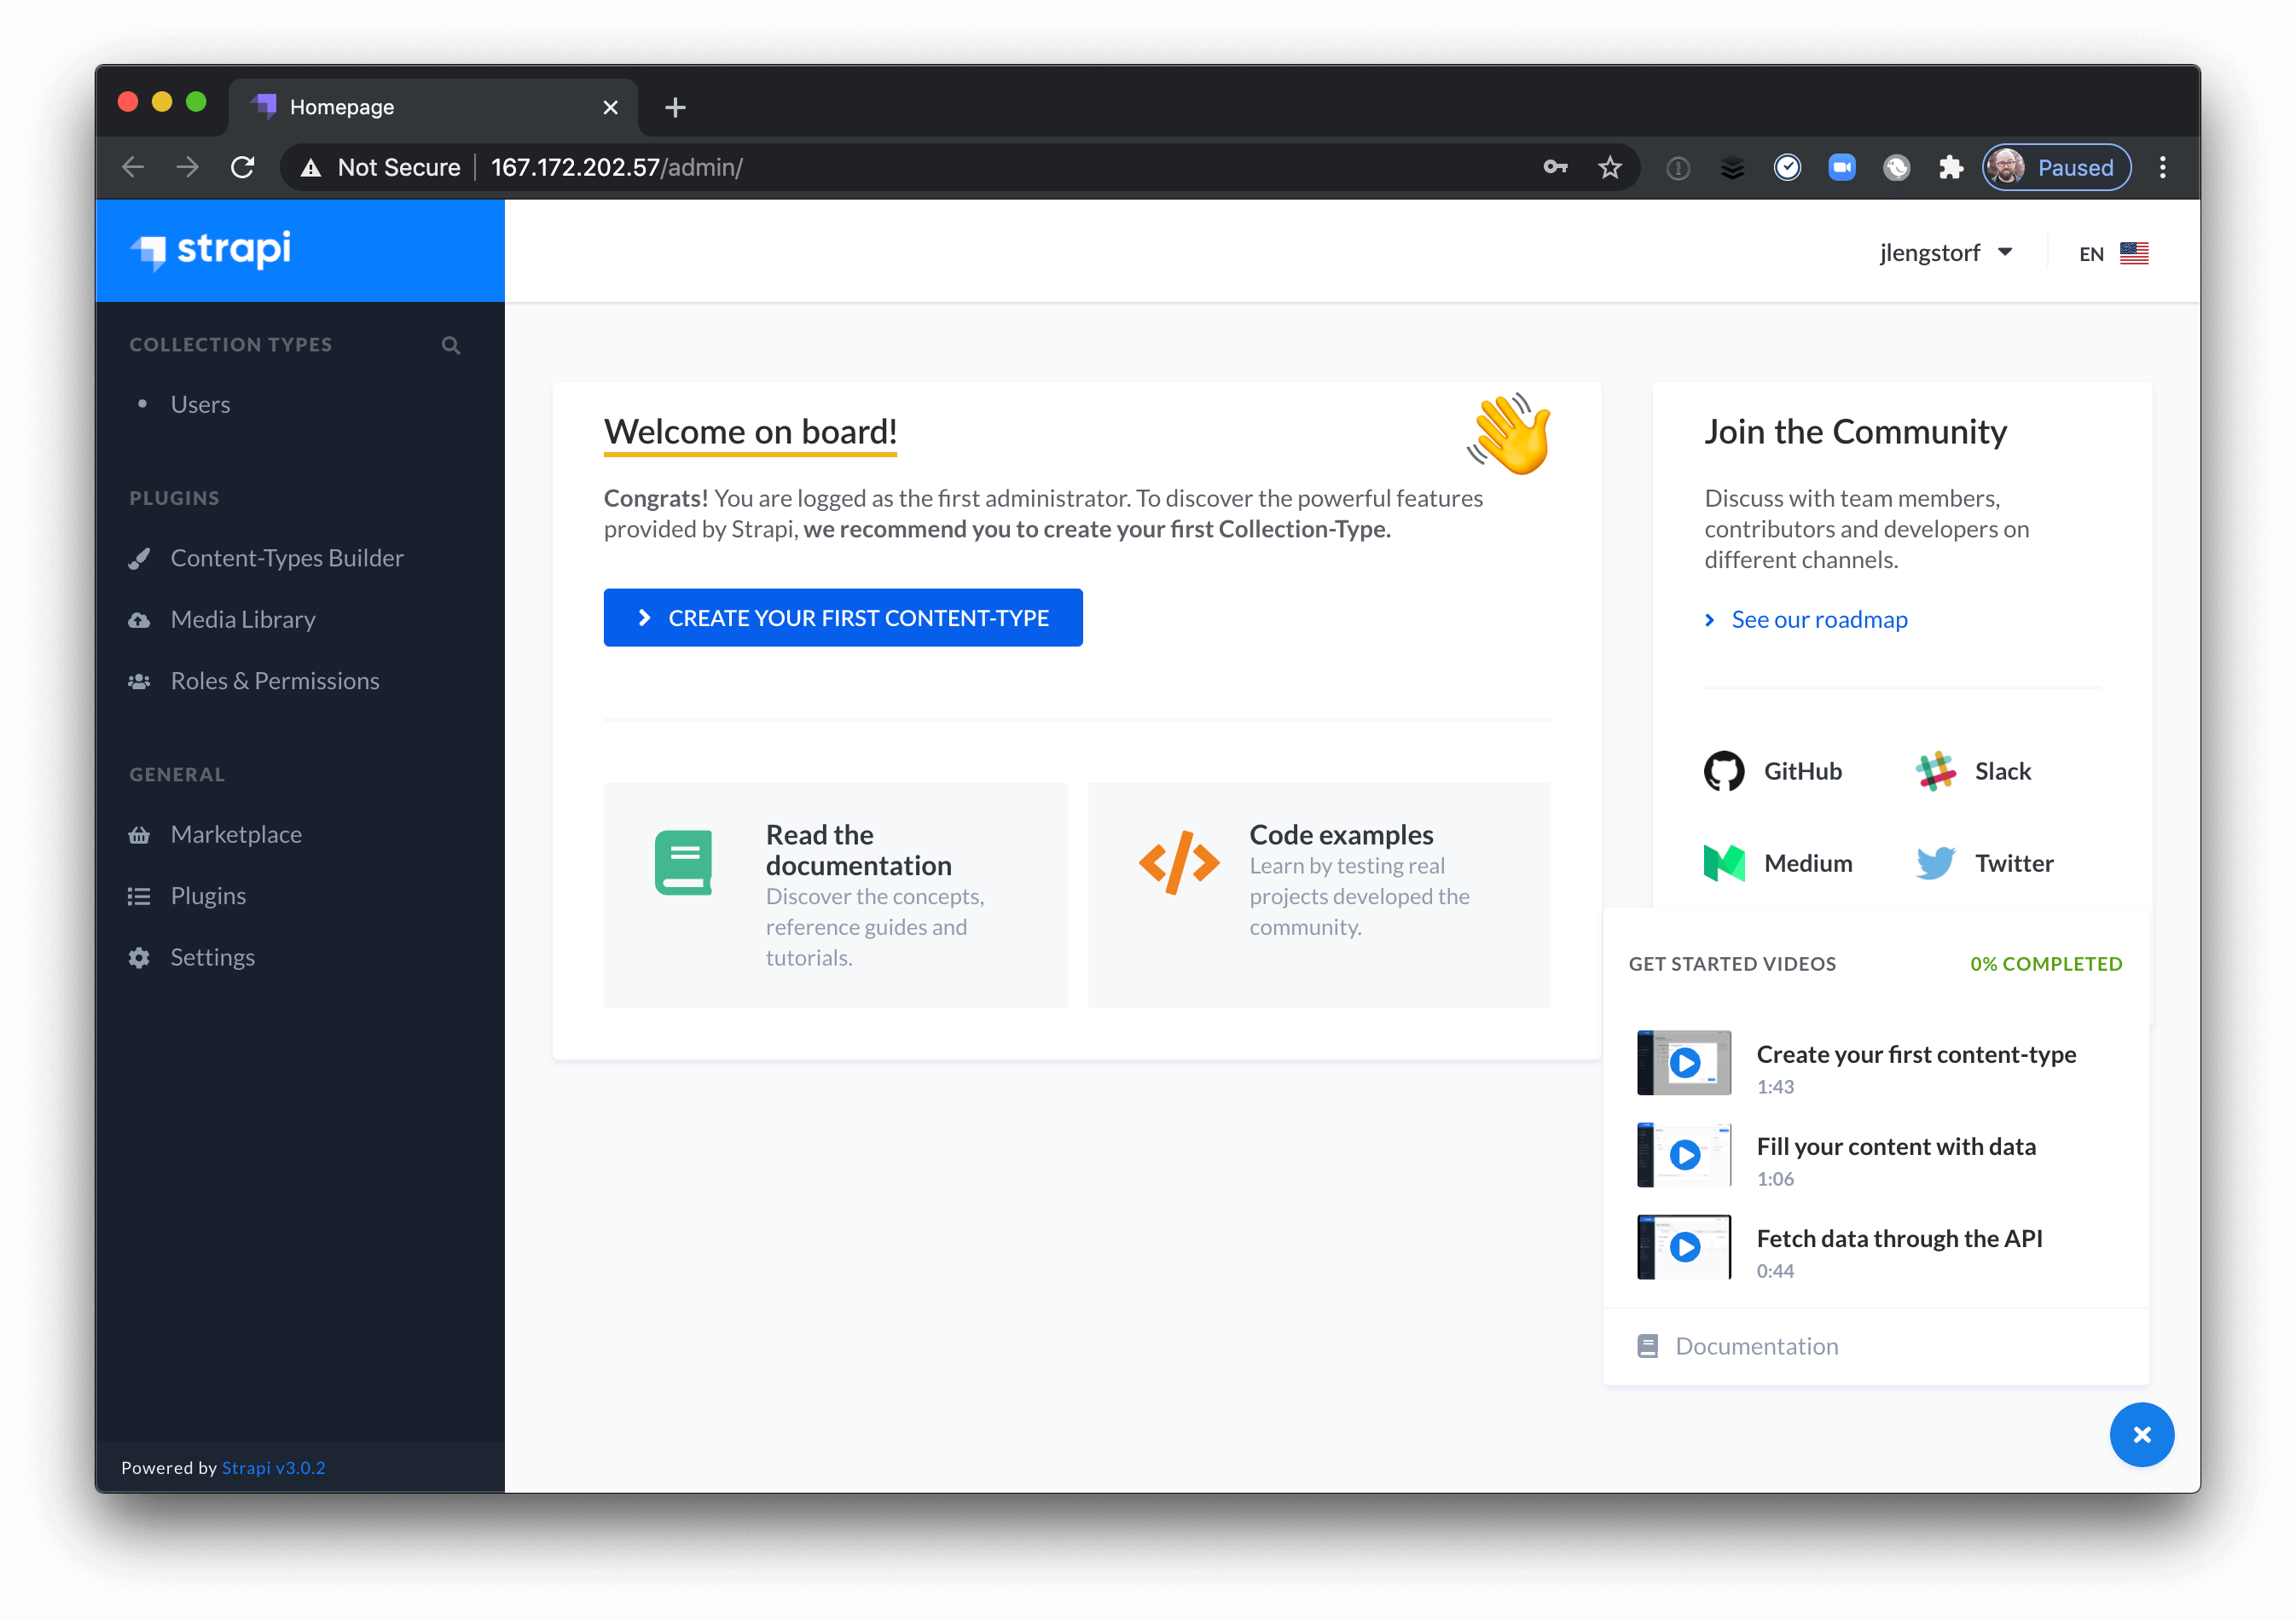 The empty state of the Strapi dashboard.